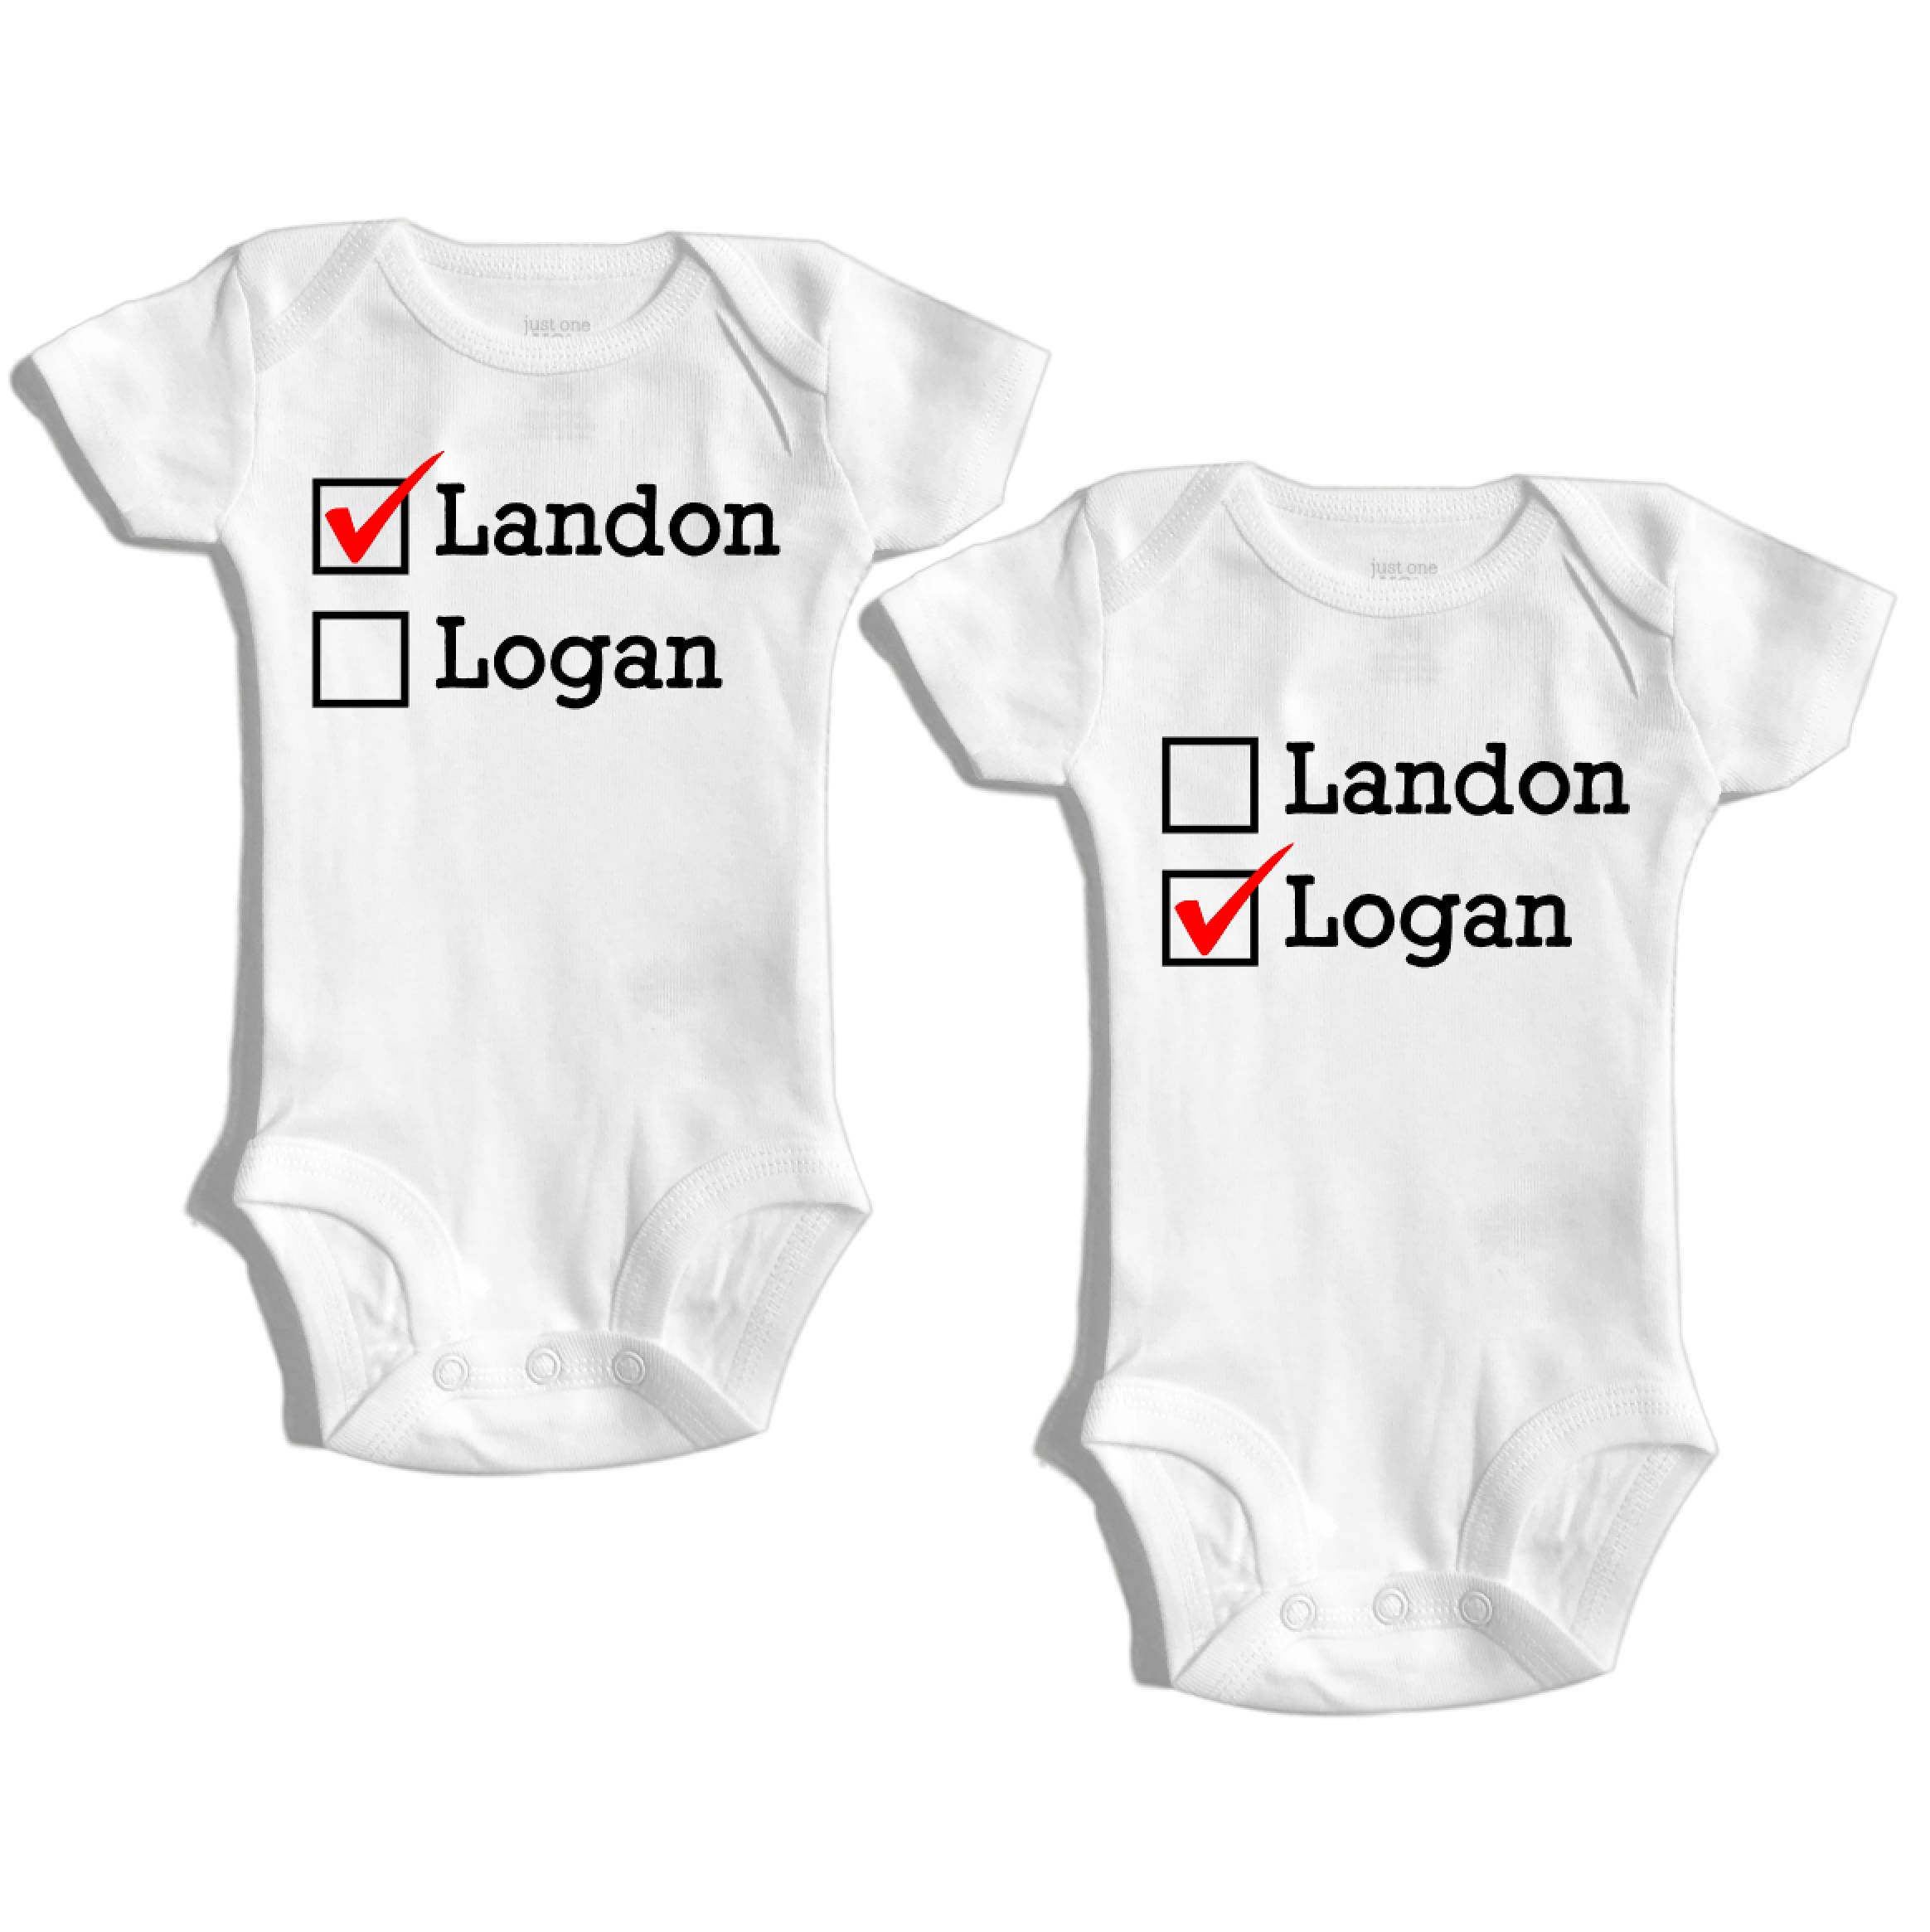 Twins baby ts Twin outfit Twin baby clothes Twin